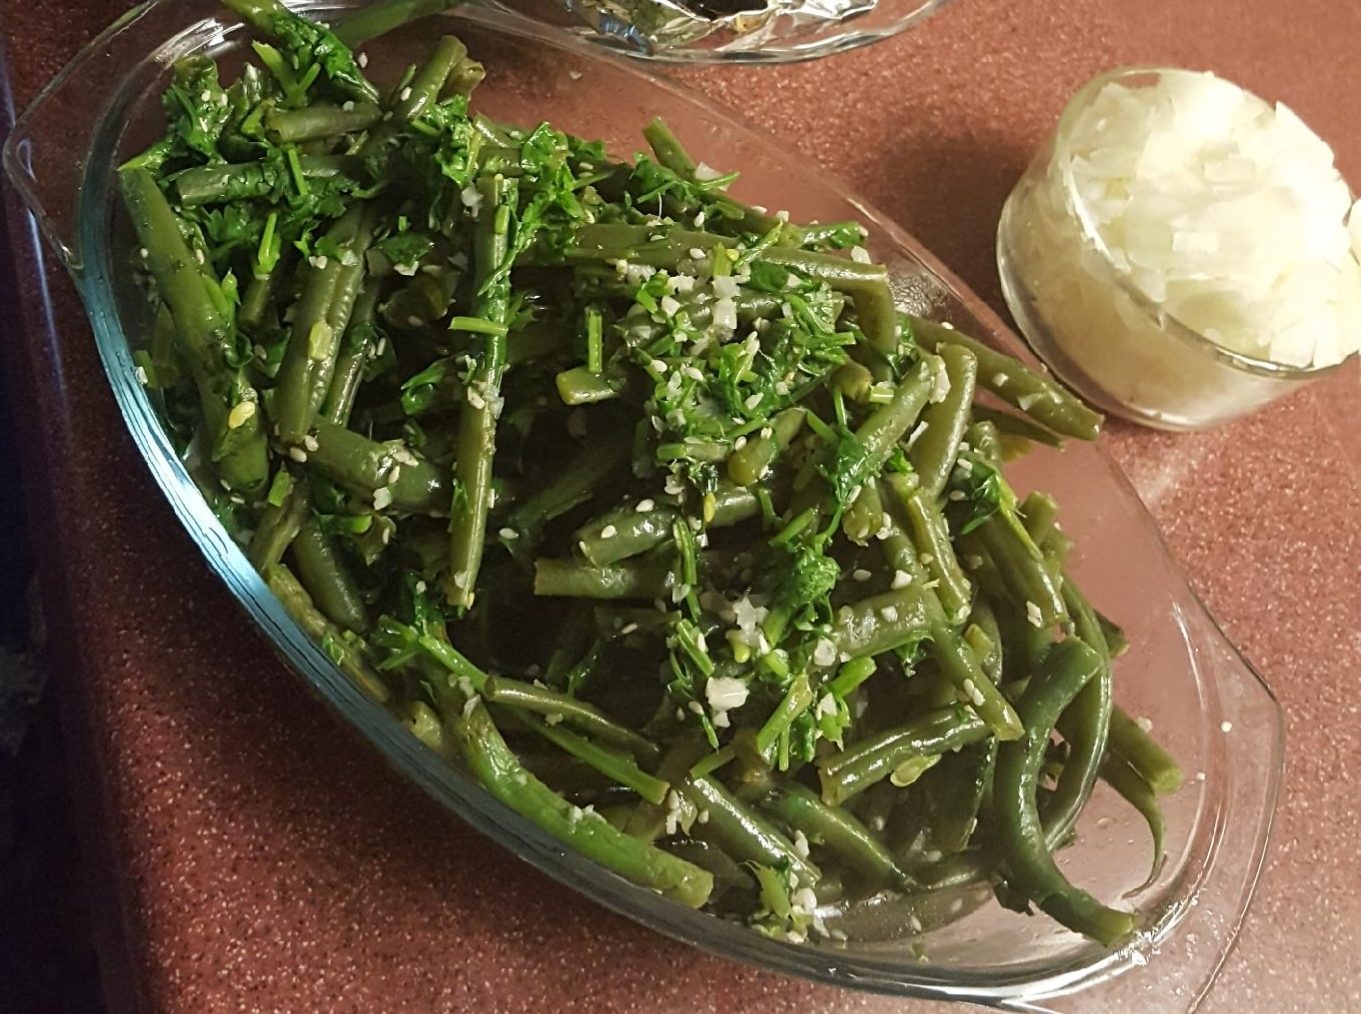 Drakes great homemade greenbean recipe for psoriasis